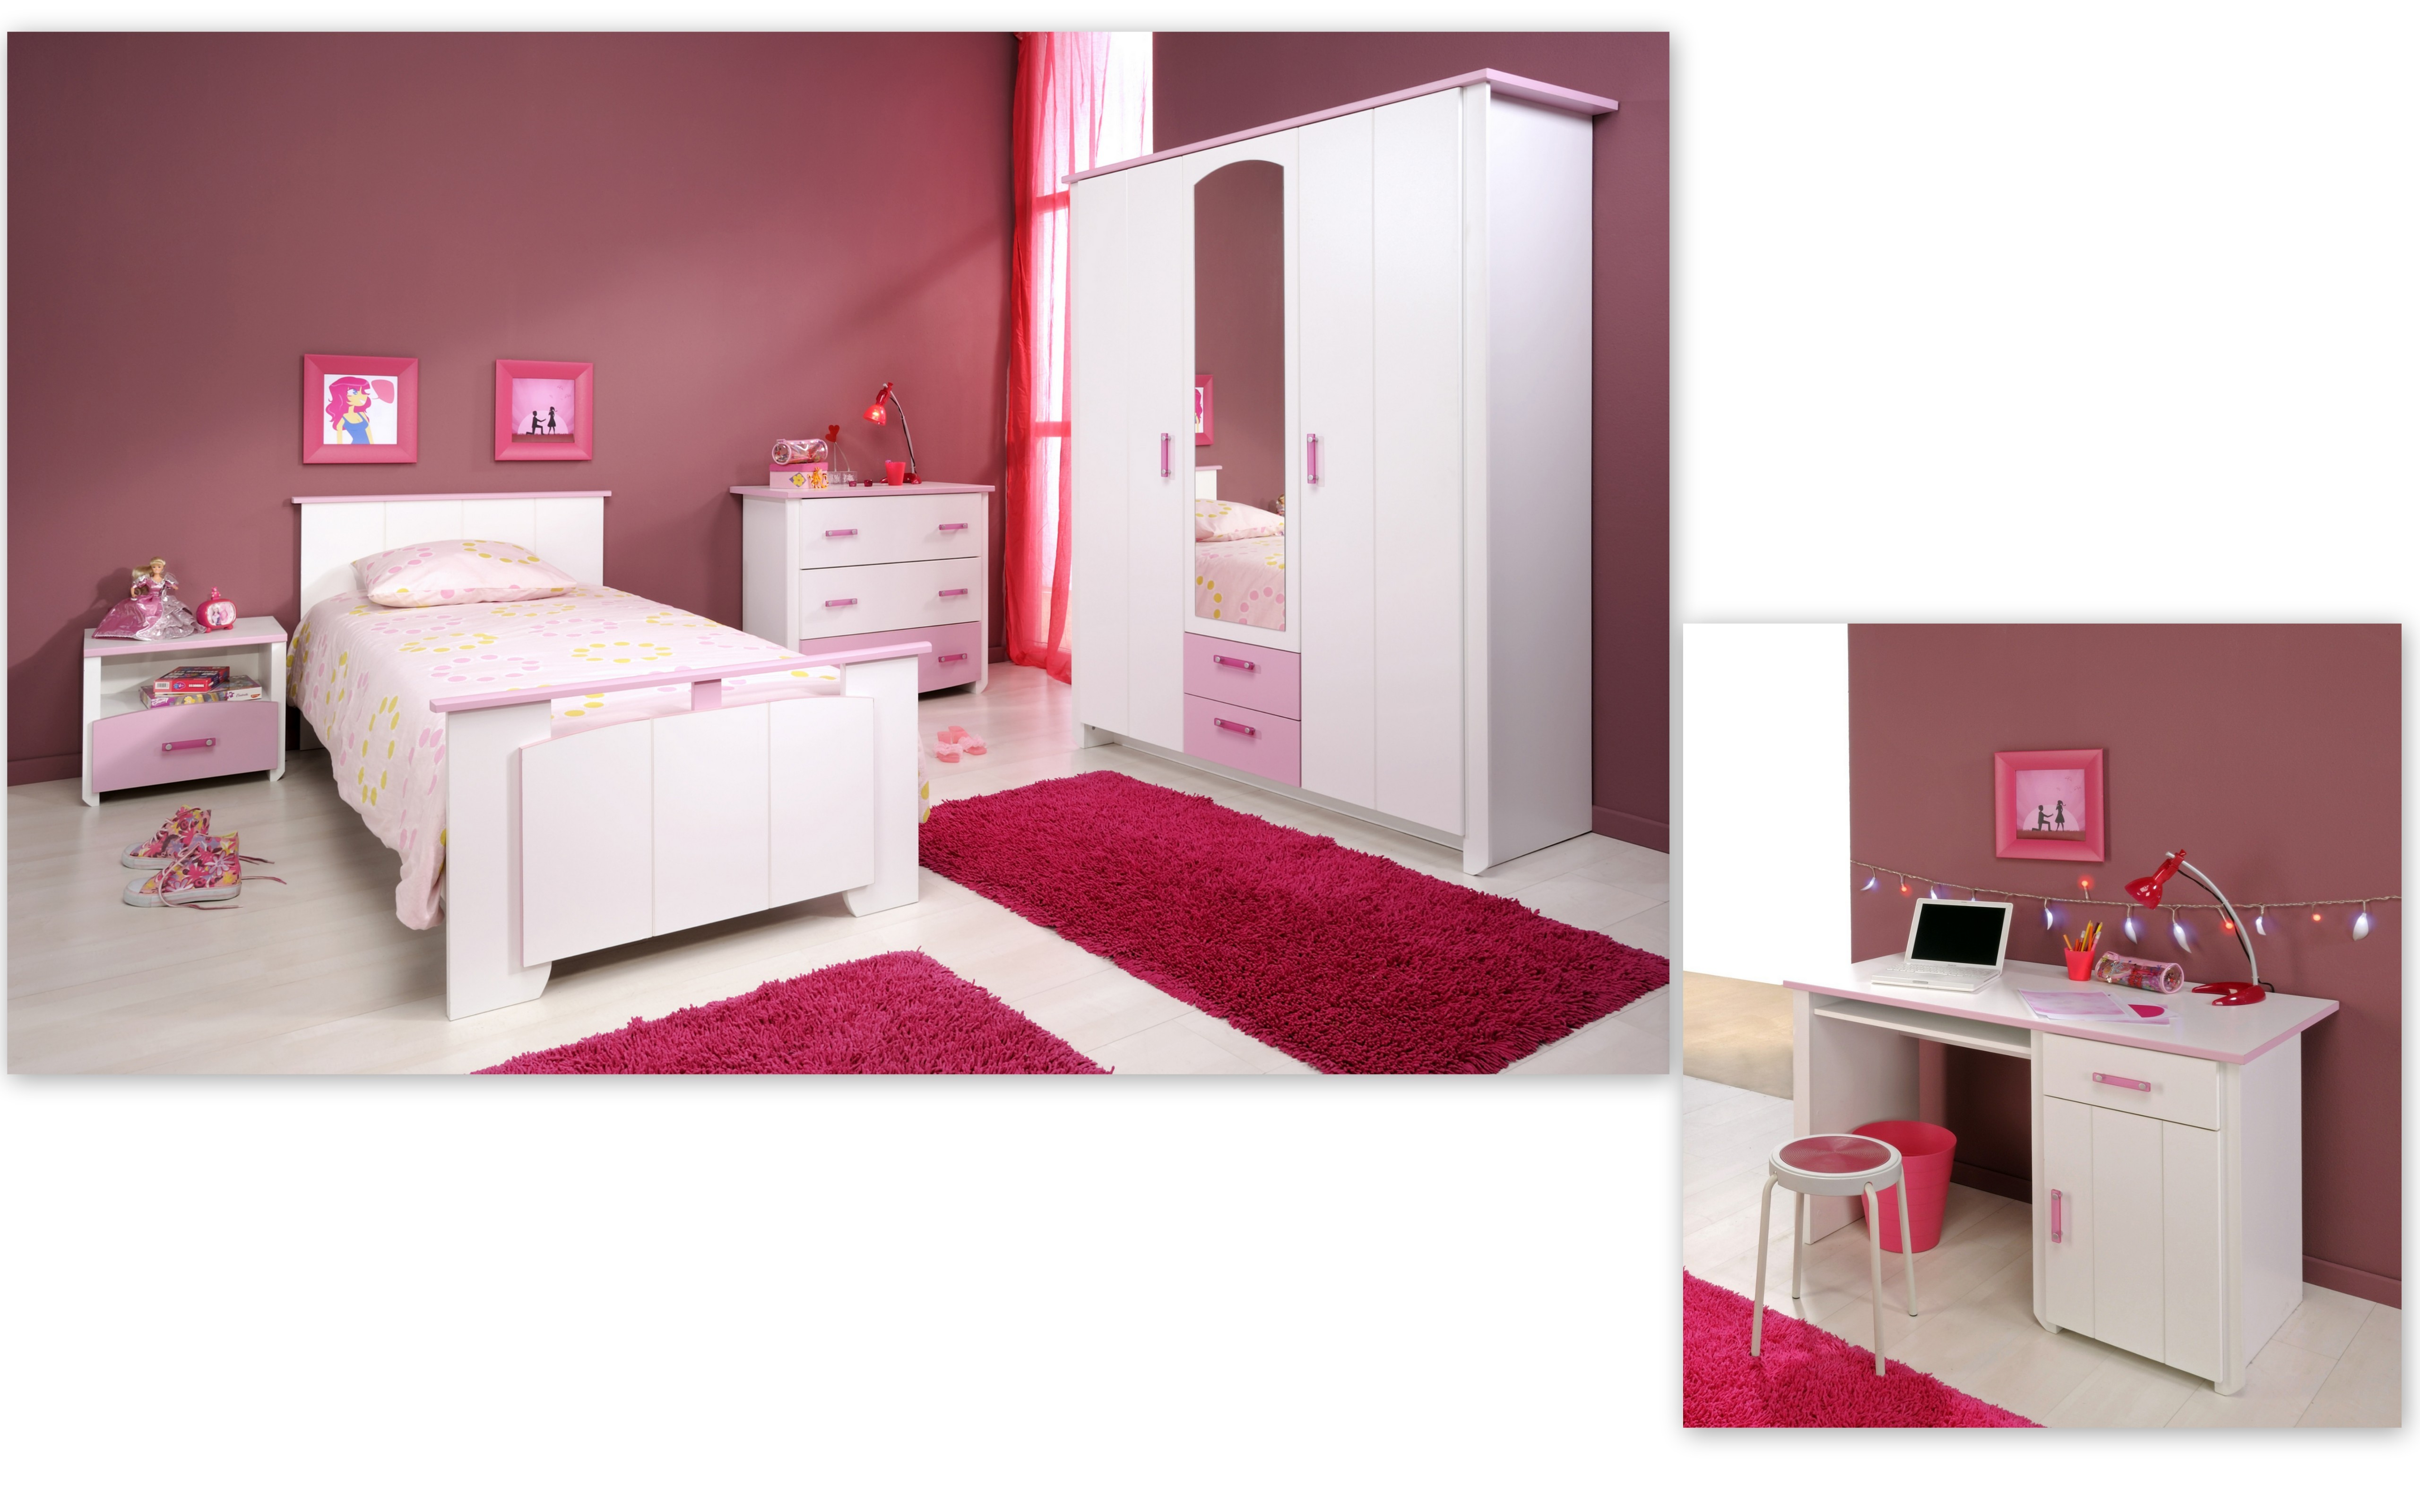 schlafzimmer 5 tlg inkl 90x200 bett u kleiderschrank 3 trg biotiful 13 von parisot weiss rosa. Black Bedroom Furniture Sets. Home Design Ideas